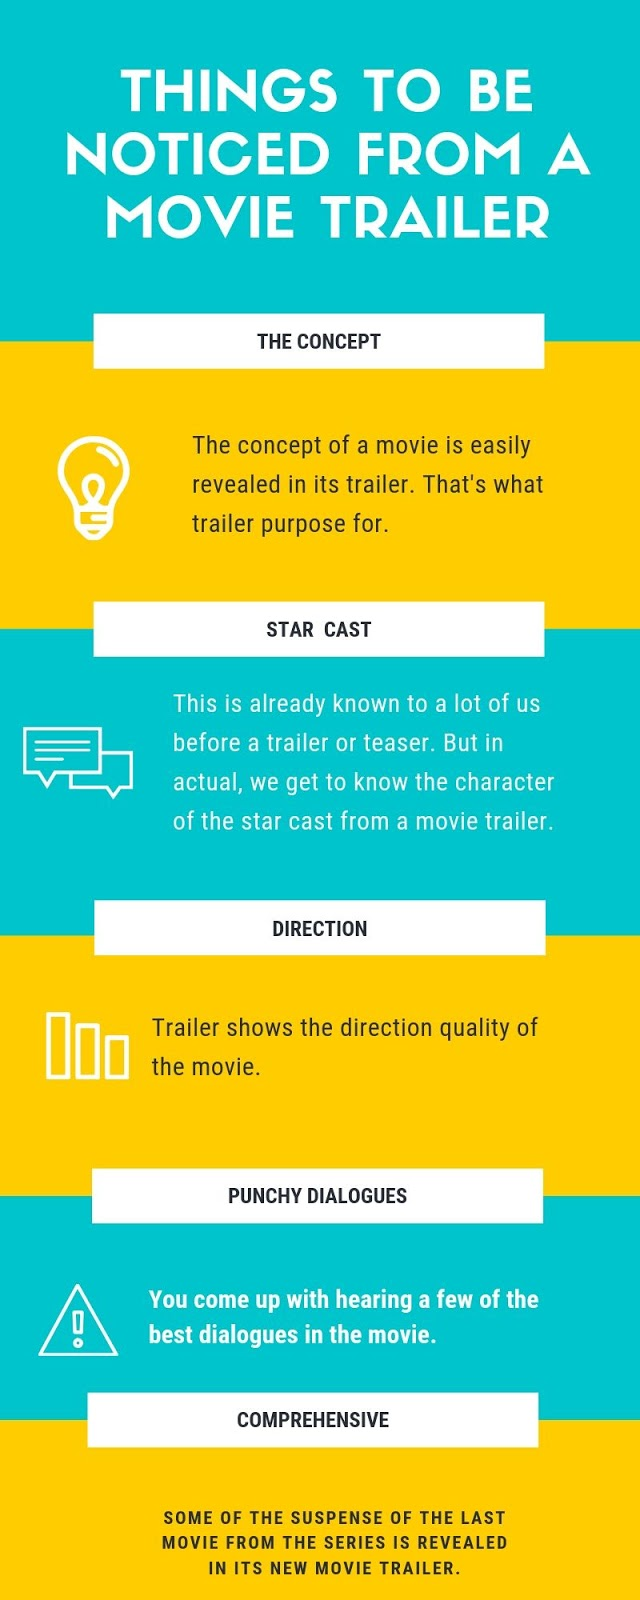 Things to be noticed from a movie trailer